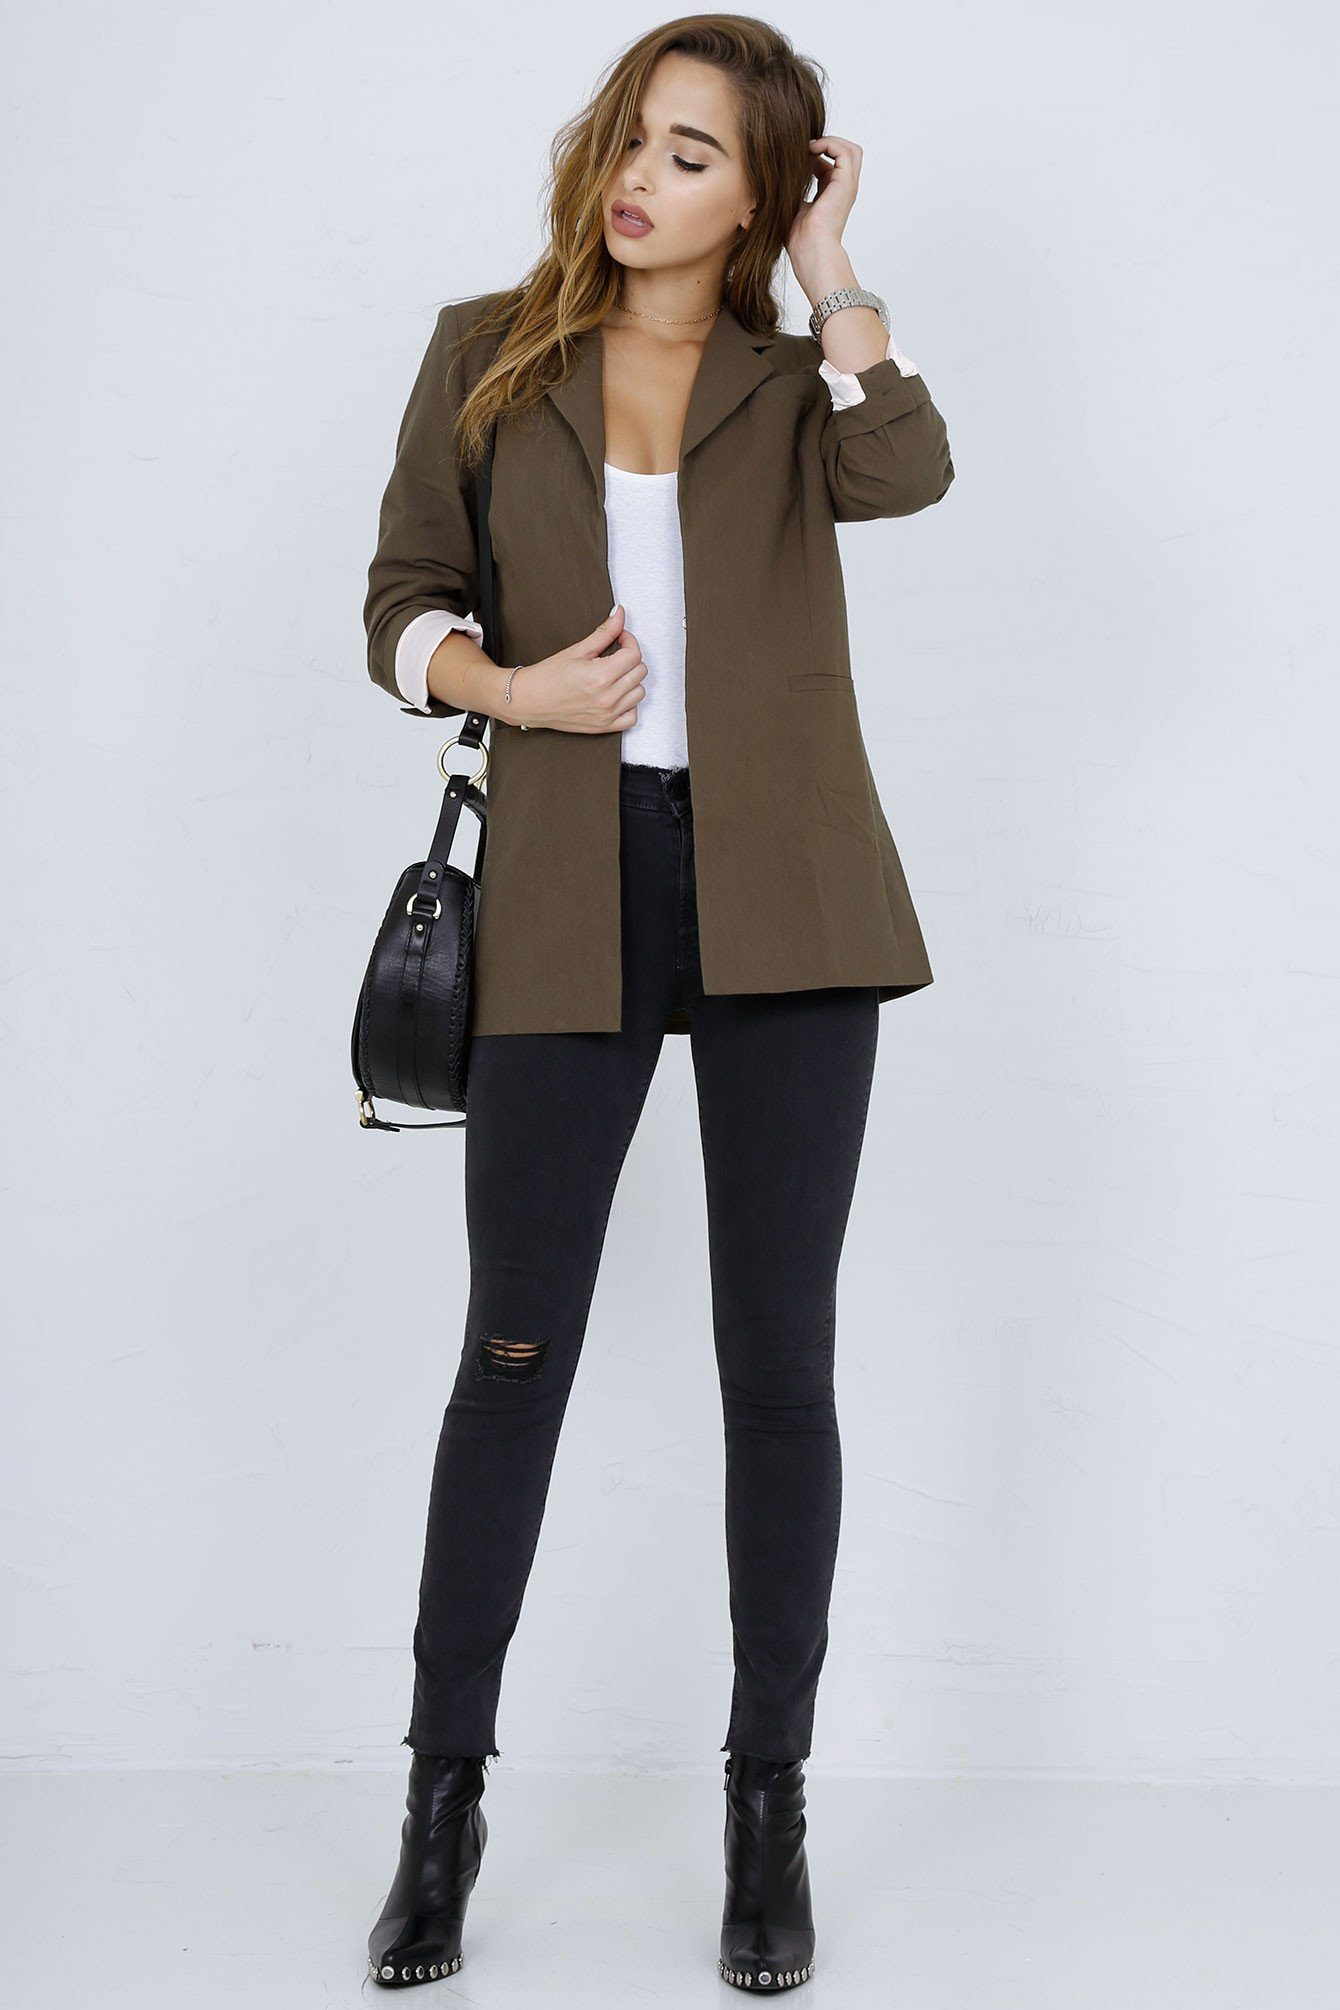 SCARLET | Perfect Blazer in Army - Scarlet Clothing  - 8